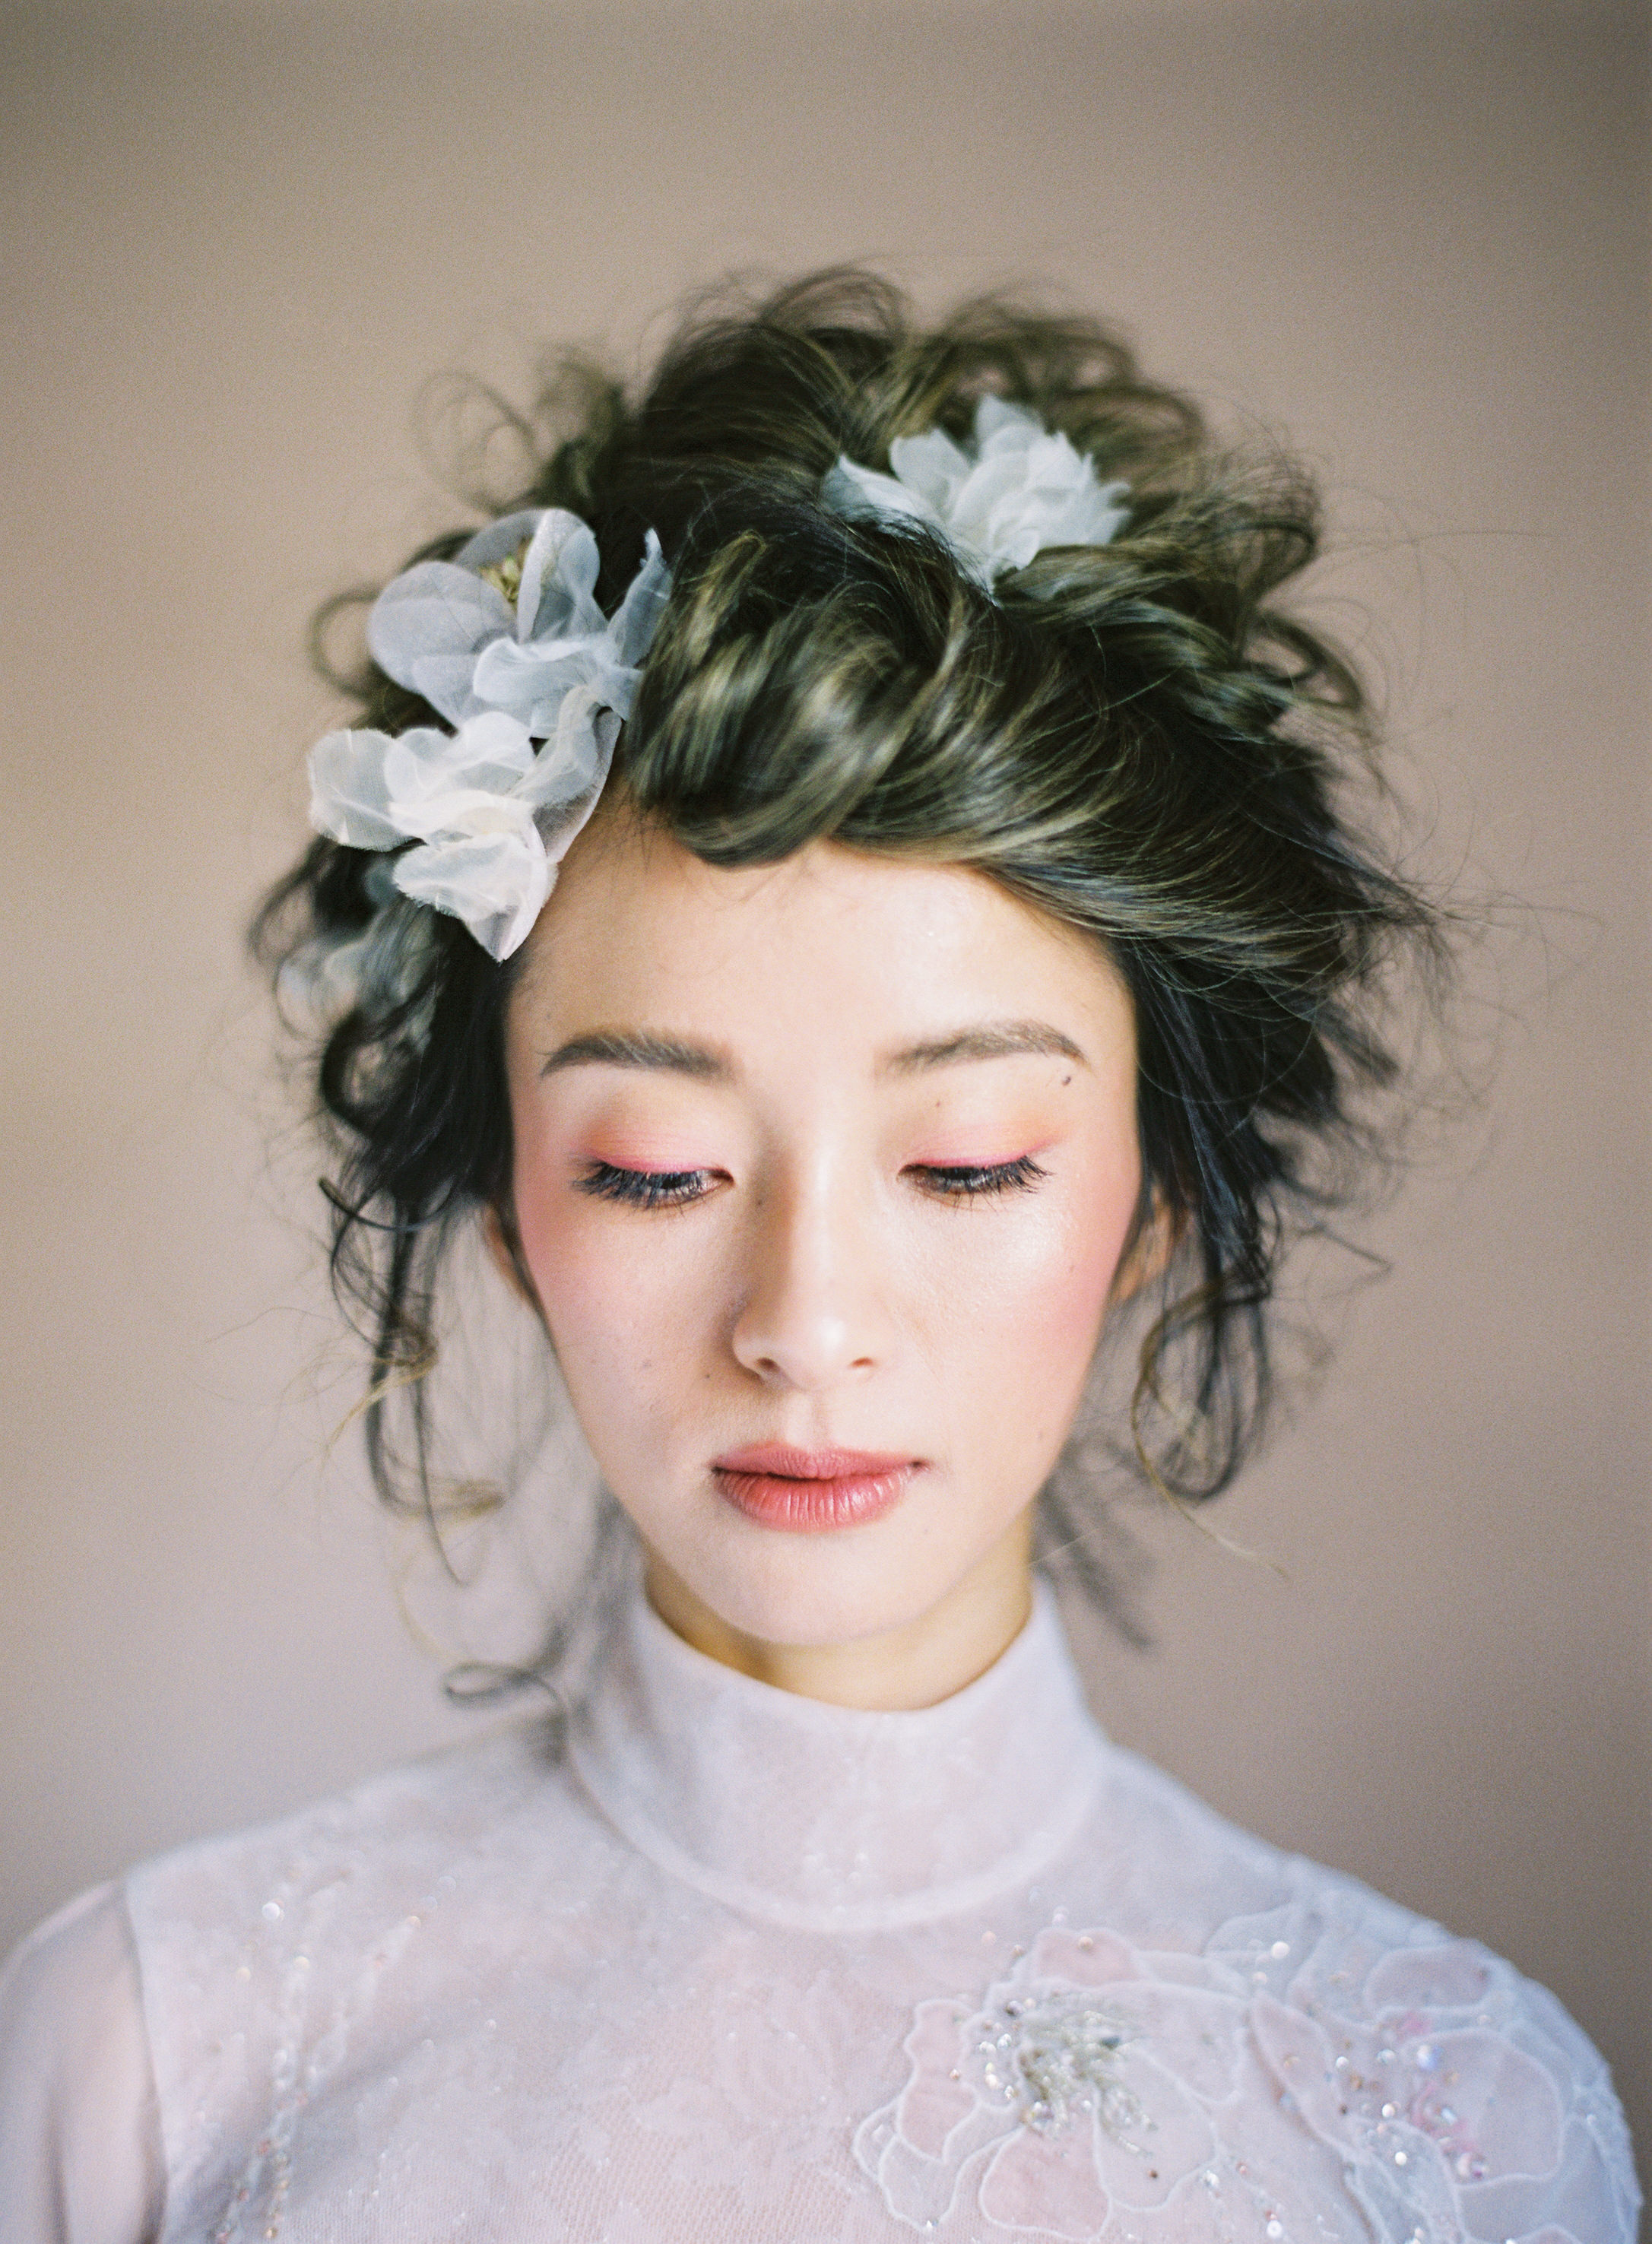 Fashion portrait with floral hair accessories - photo by Jen Huang